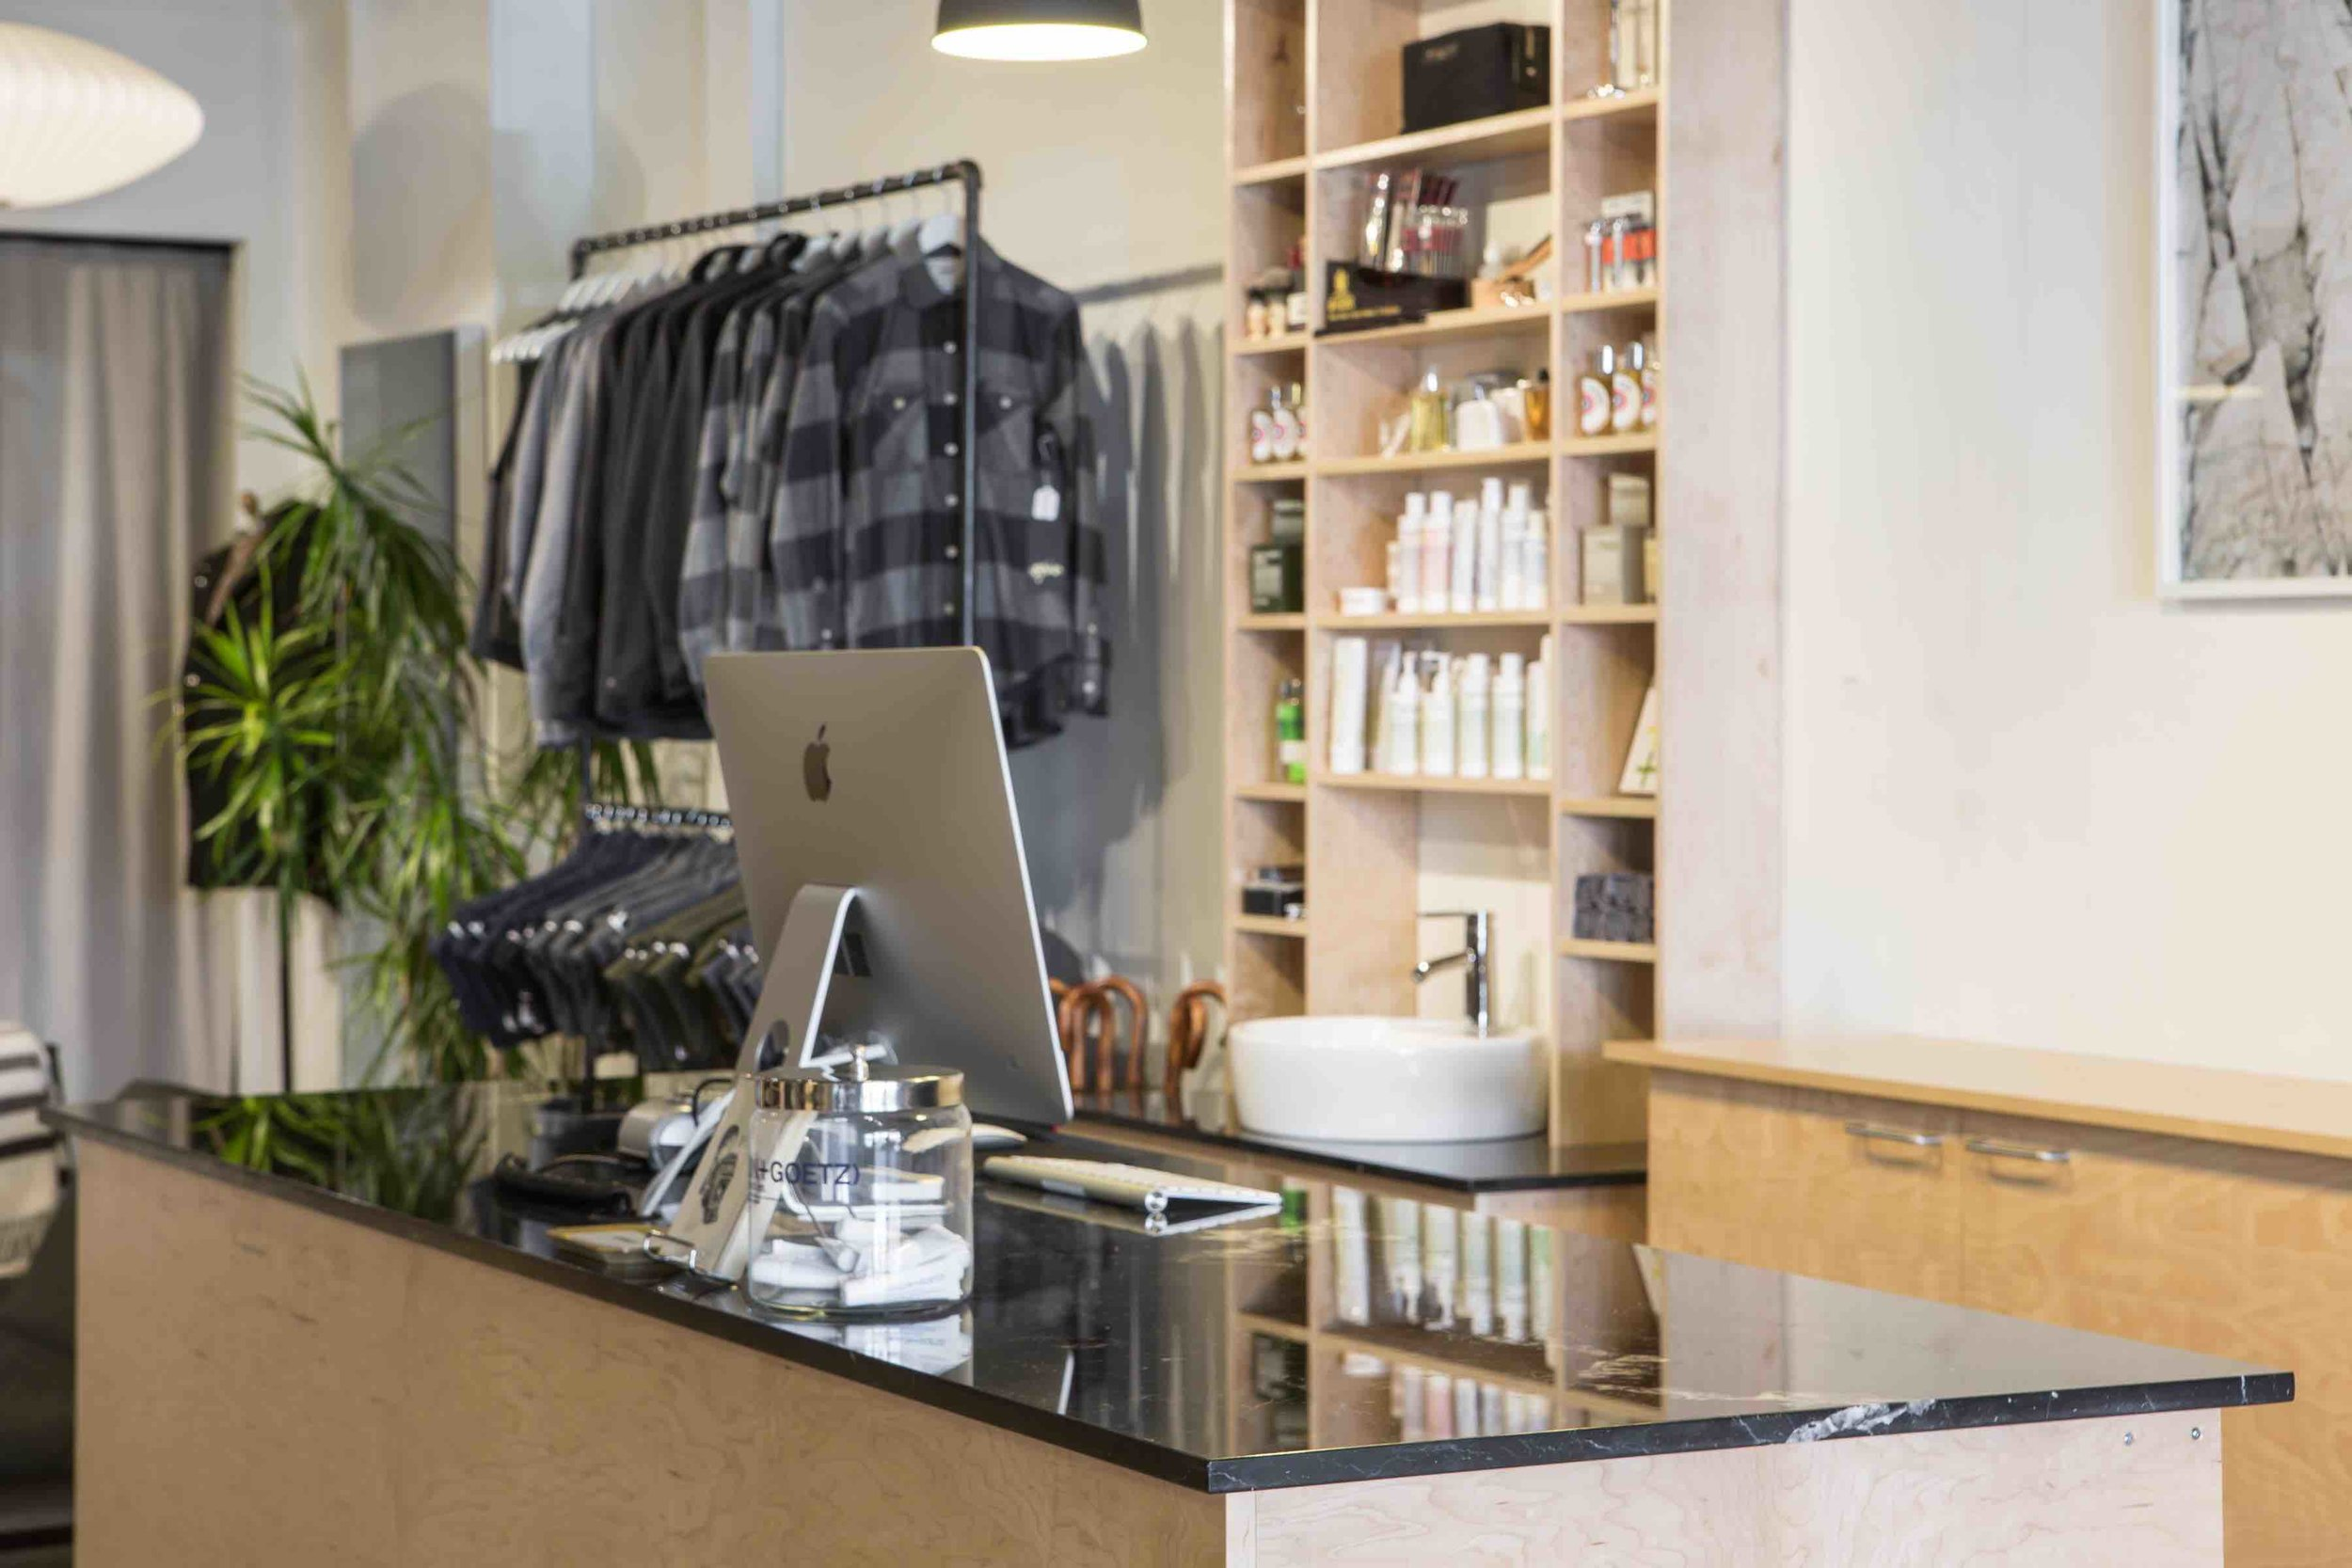 WELCOME - Since our opening in 2013, our unique perspective has attracted a growing clientele of like minded people. We invite you to experience our perspective for yourself at our Junction shop or online.